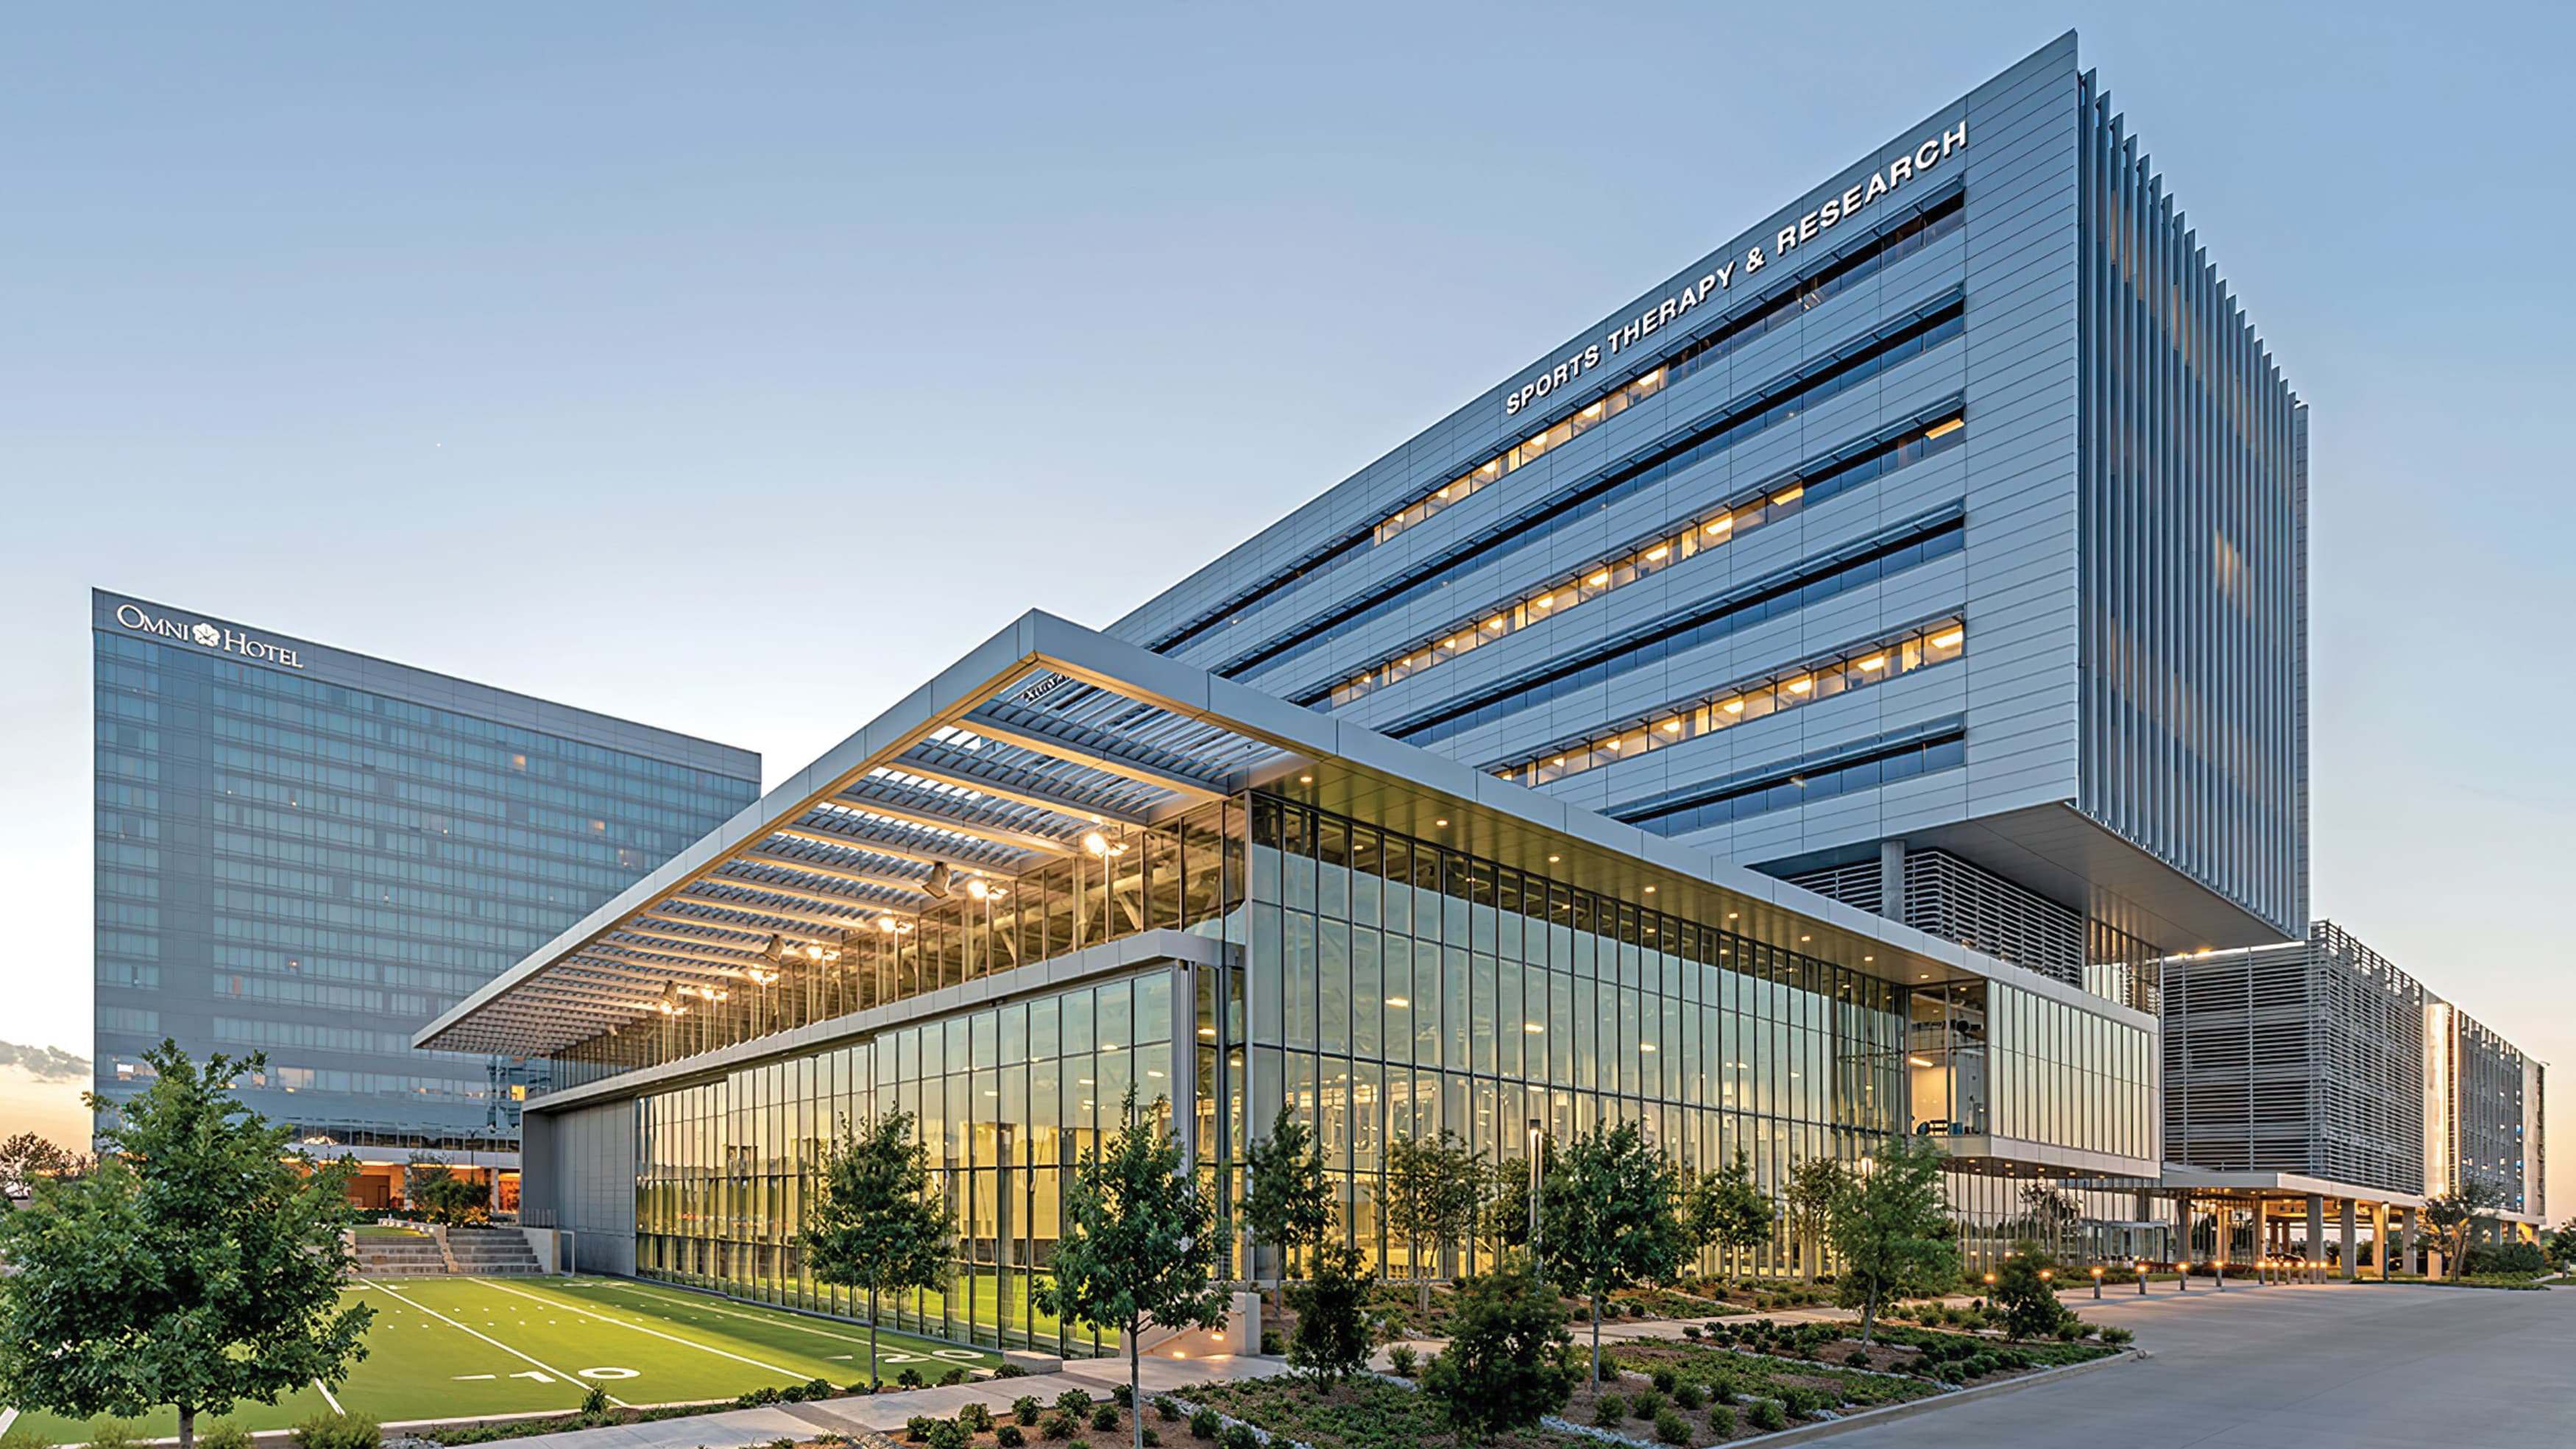 An exterior photograph of the Baylor Scott & White Sports Therapy & Research building at The Star in Frisco, Texas.